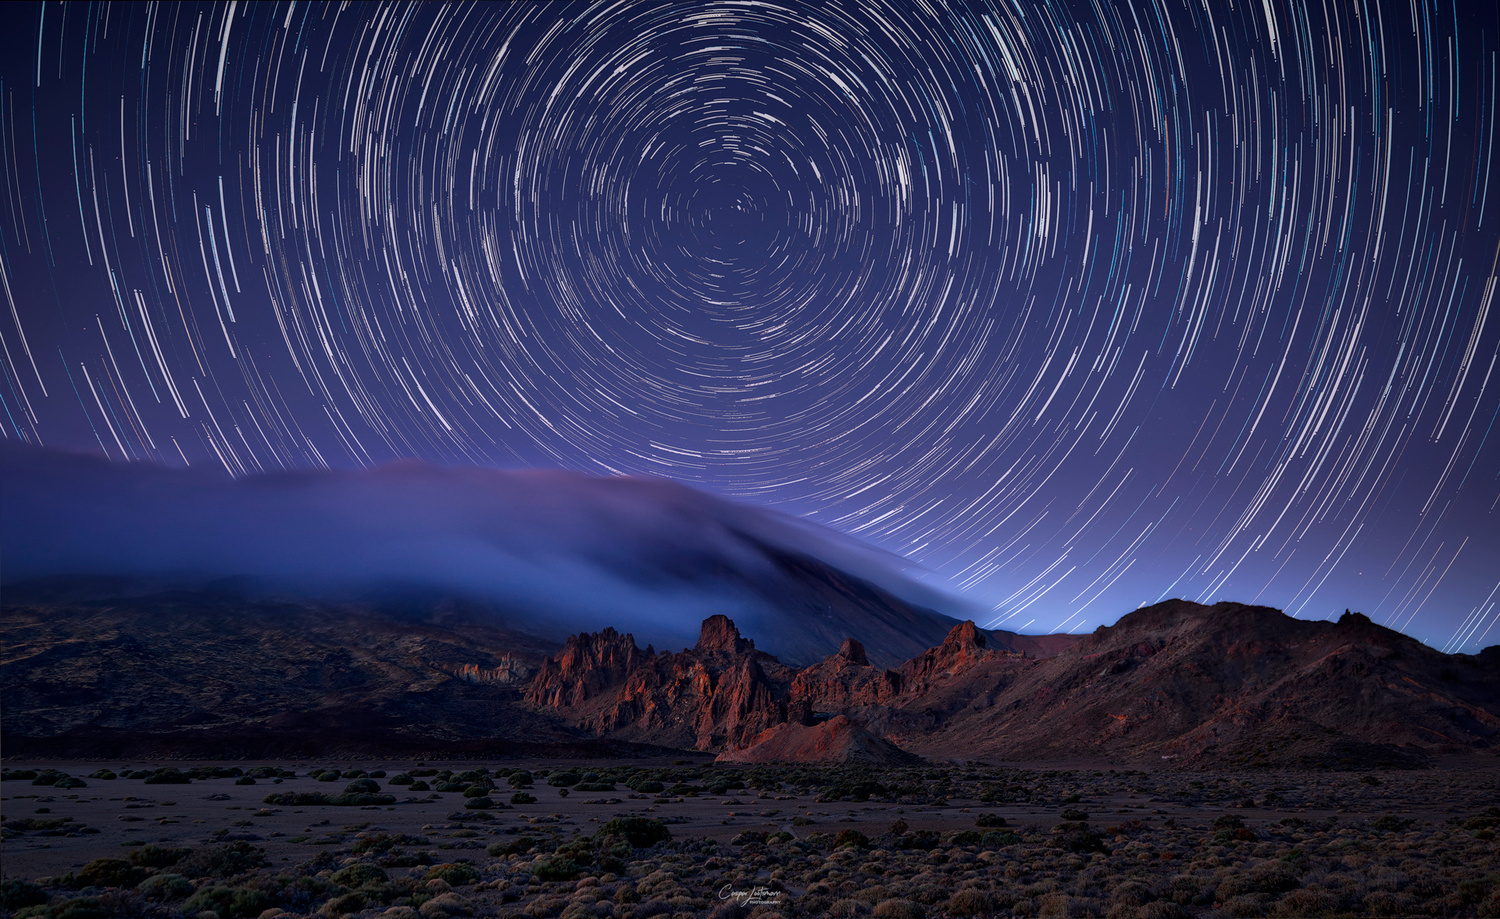 Veil of Teide by Caspar Lootsmann